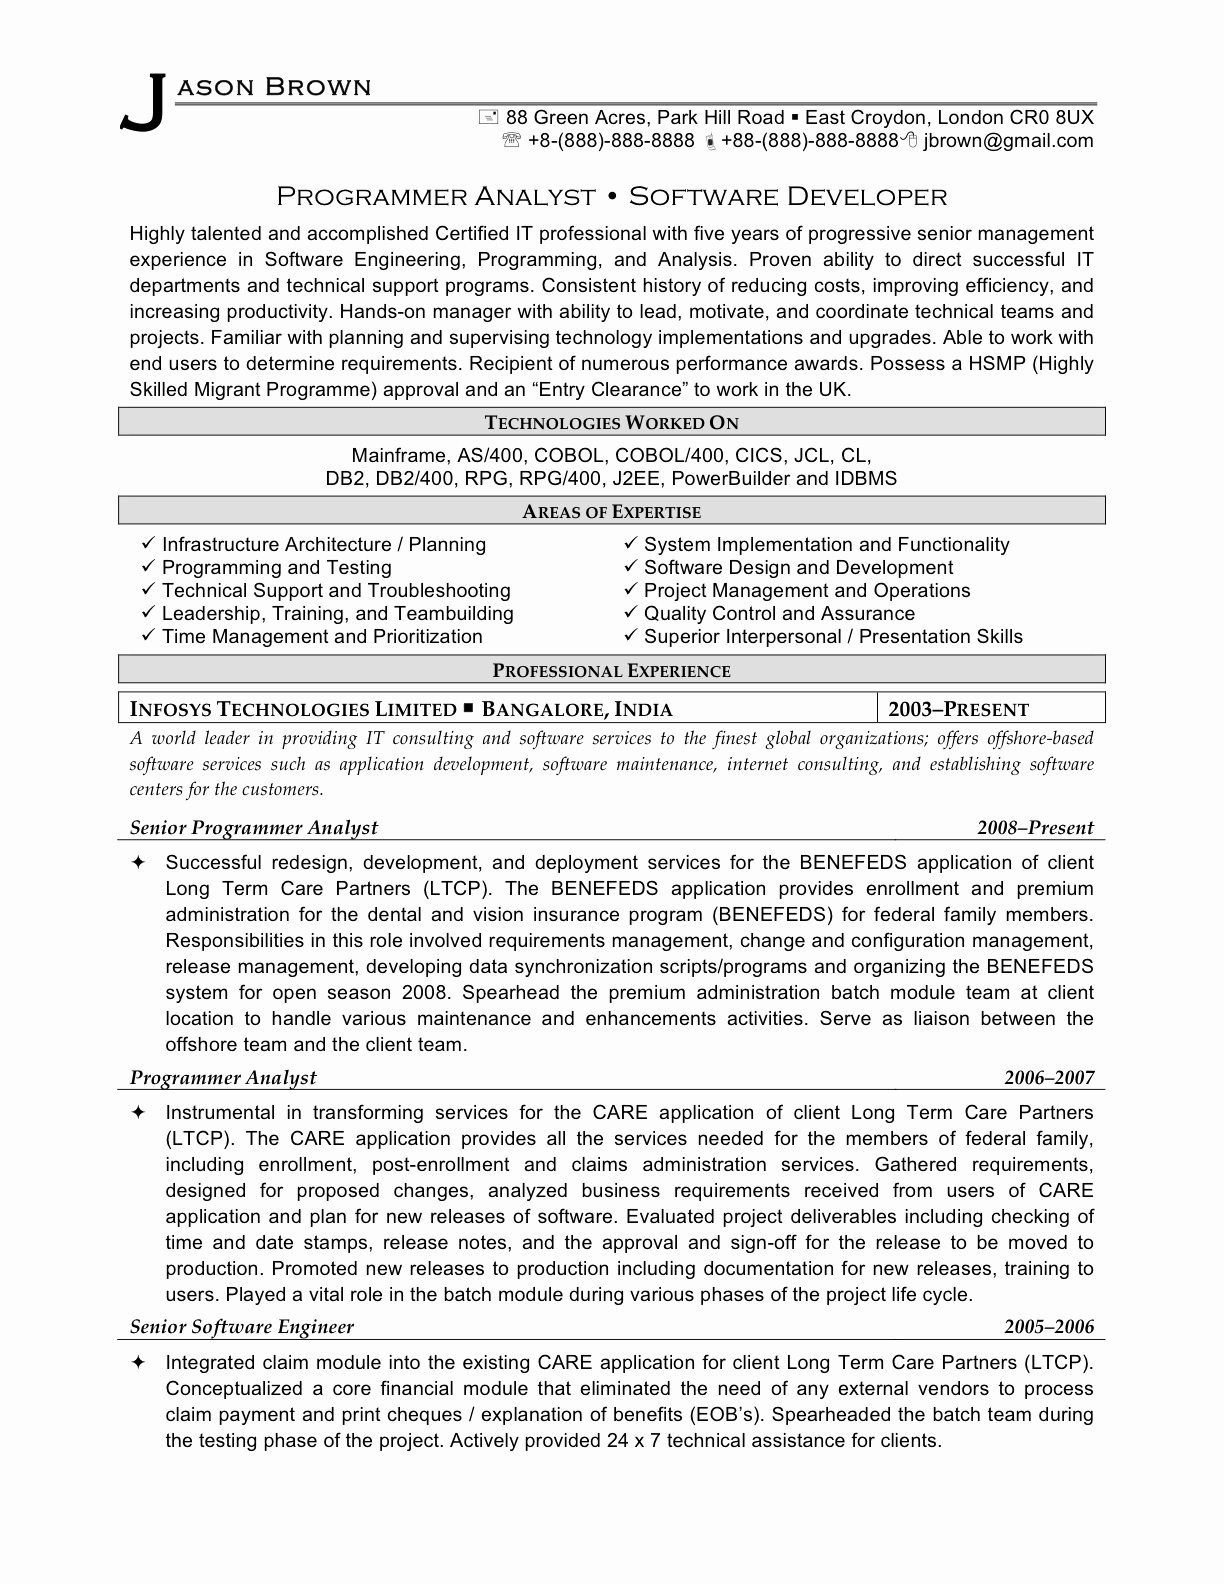 Resume for software Developer Experienced - 20 Resume for software Developer Experienced